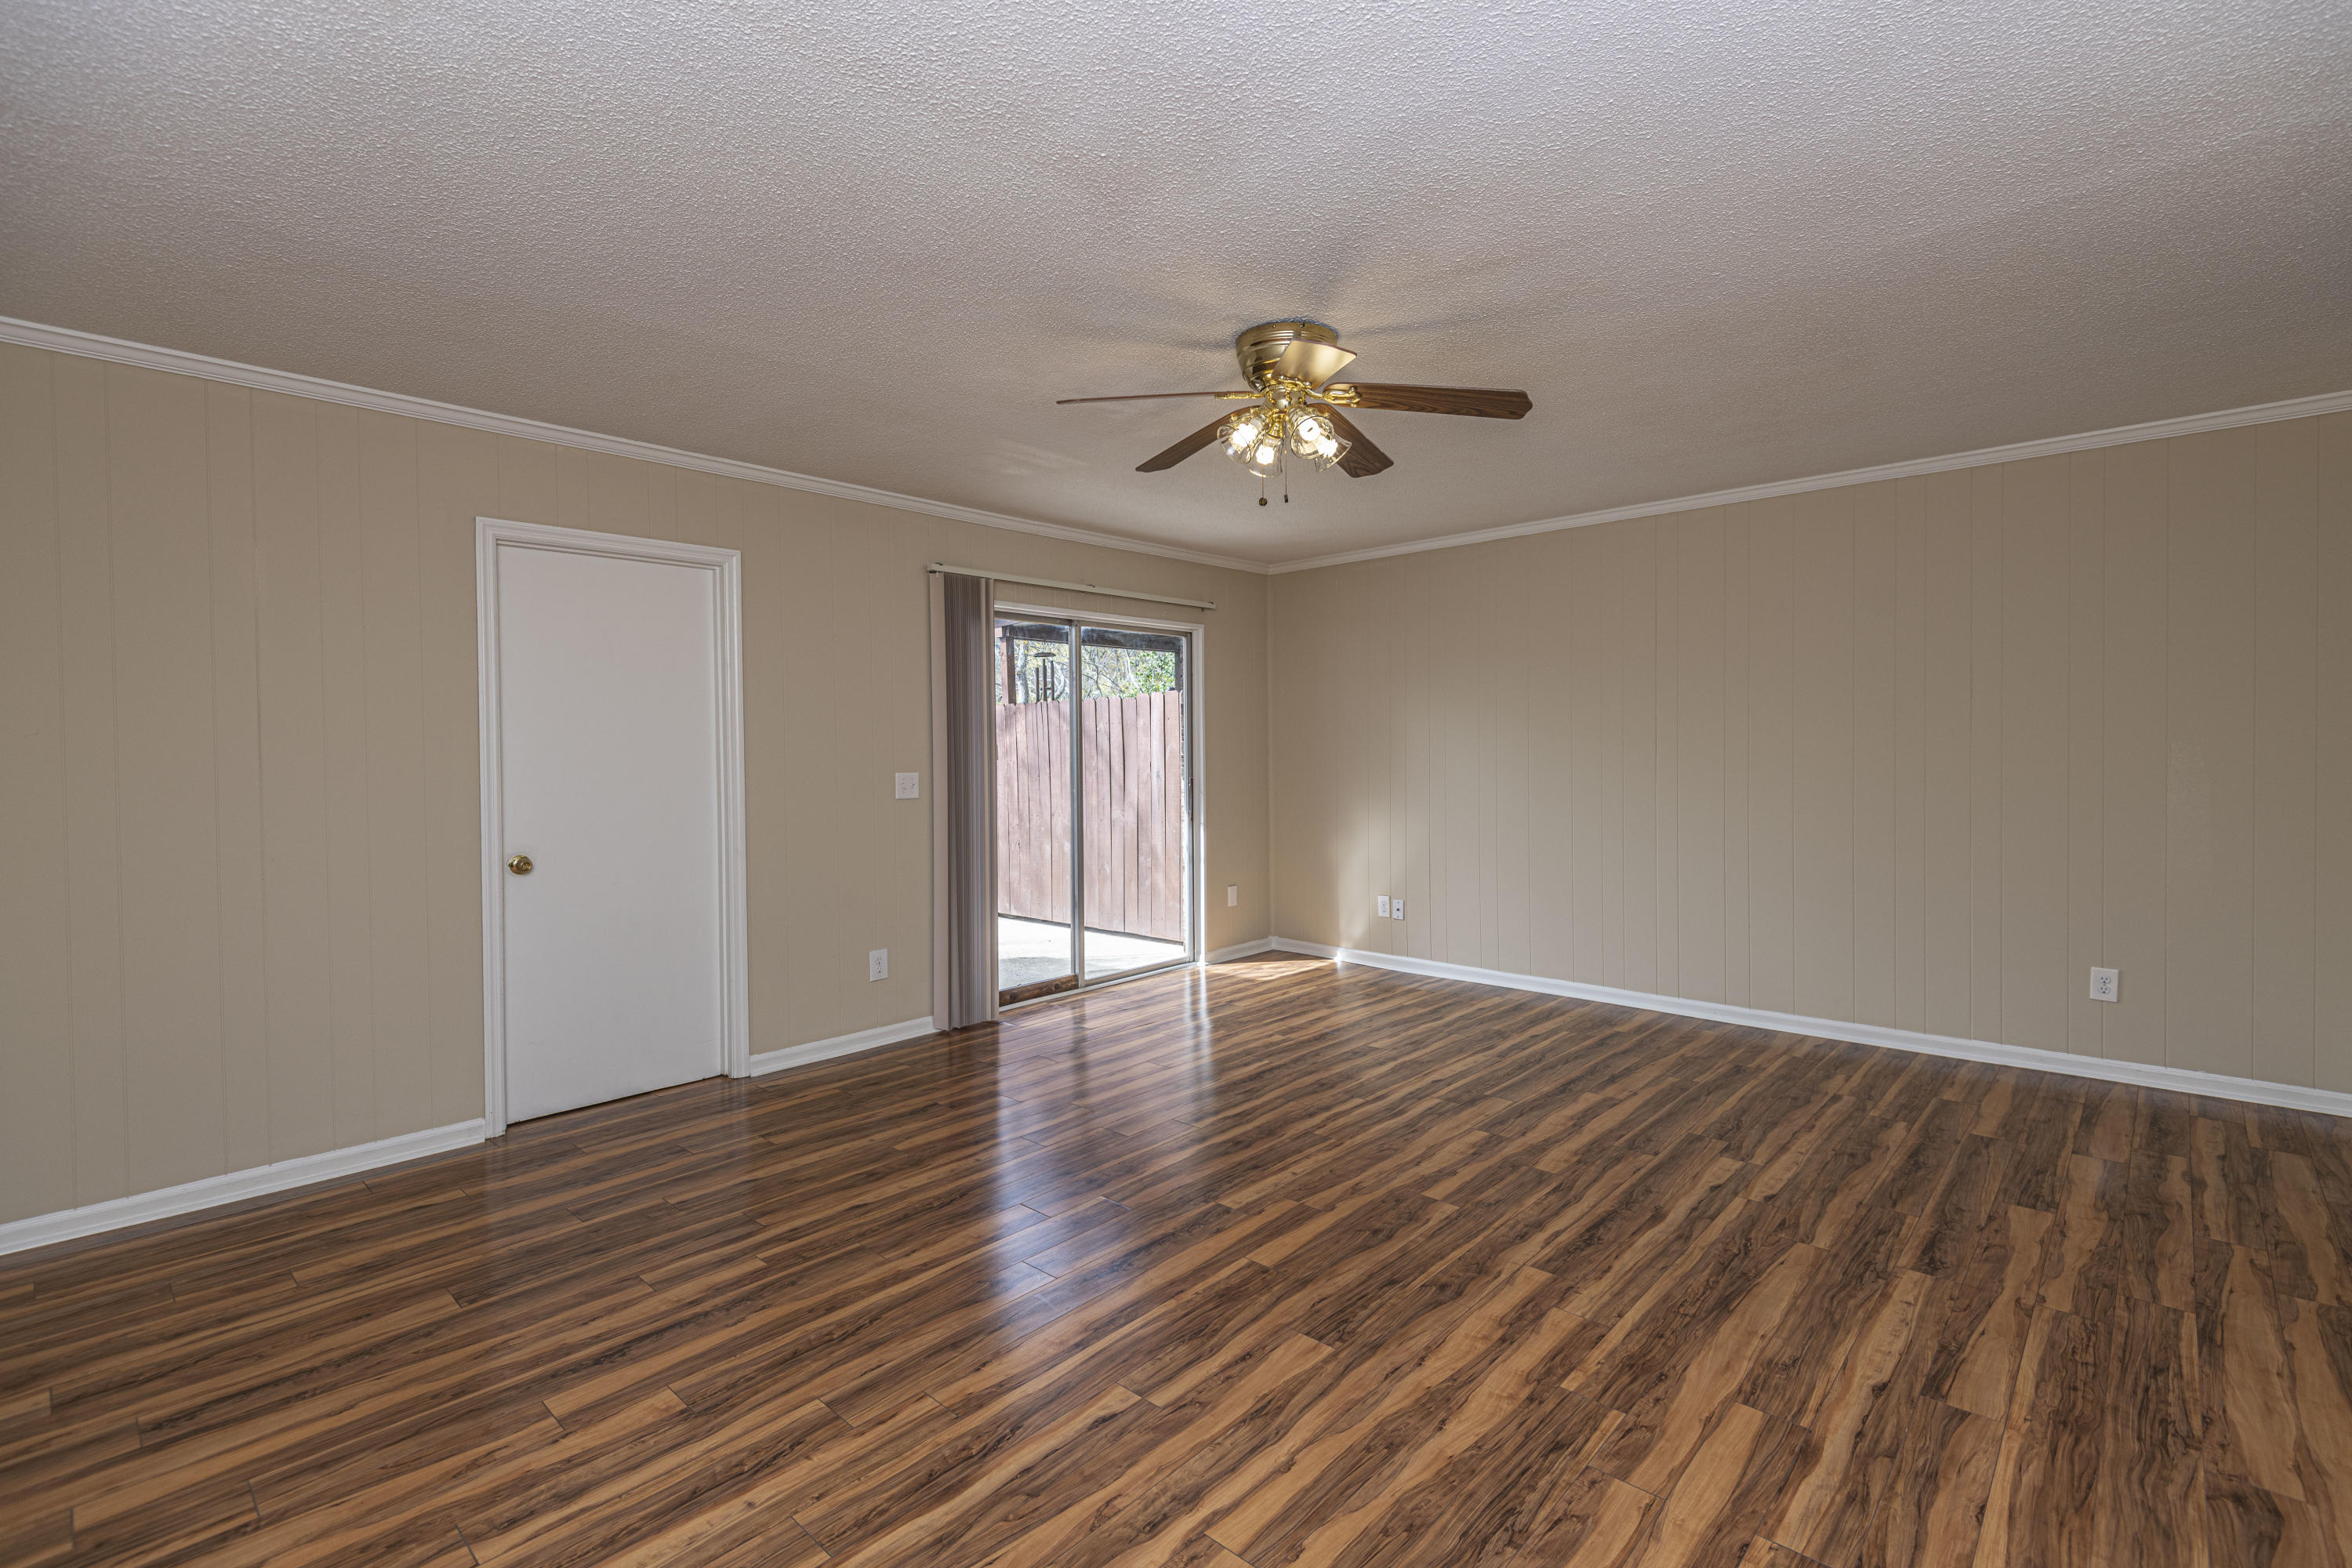 Foxborough Town Houses Homes For Sale - 120 Brush, Goose Creek, SC - 24